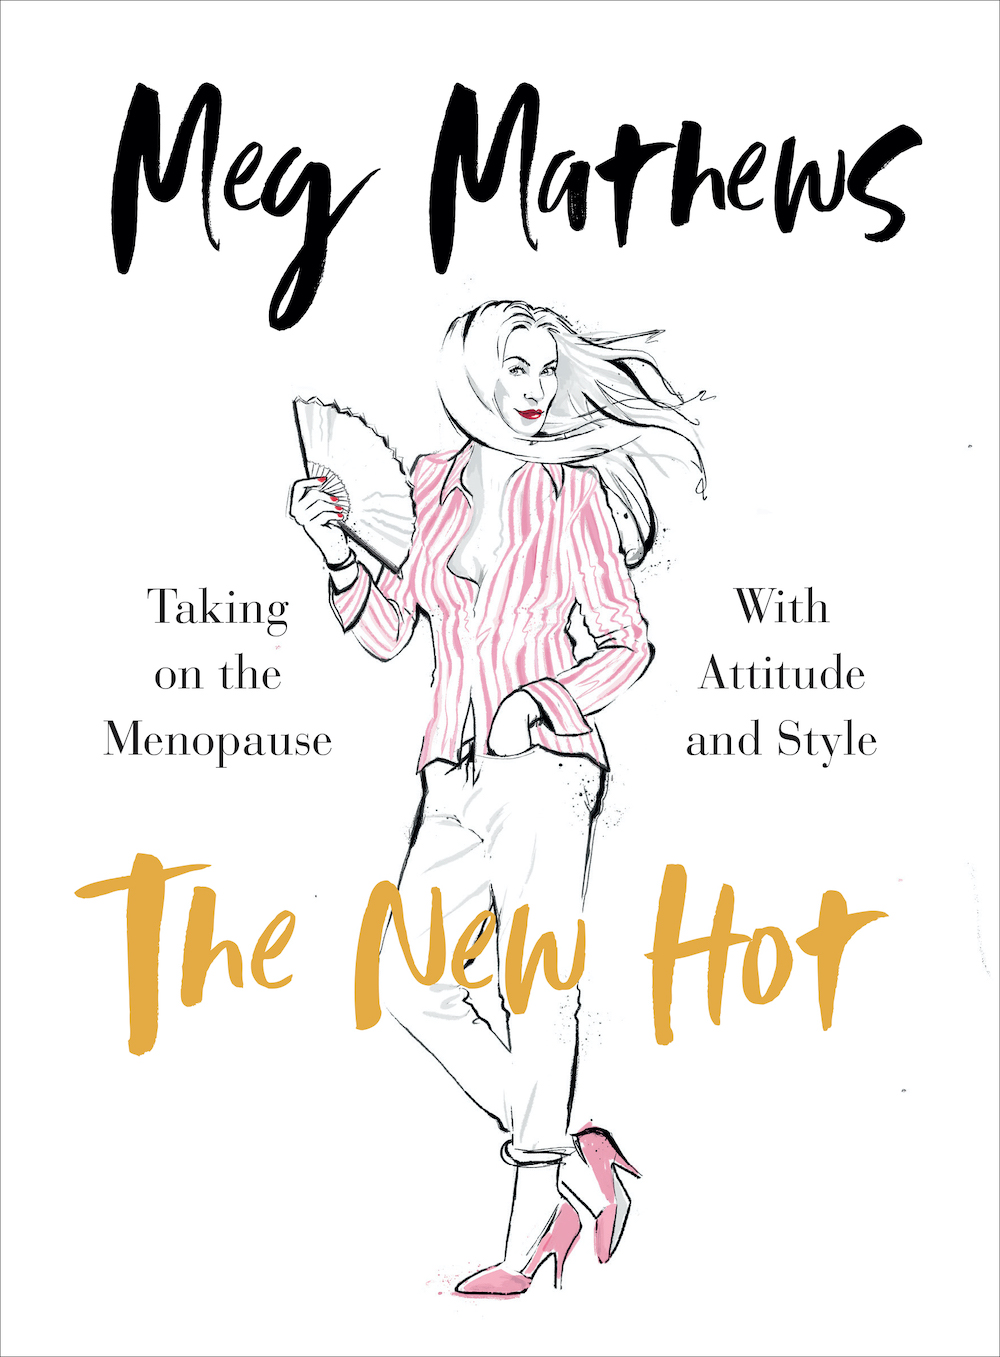 The-New-Hot-cover BY MEG MATHEWs